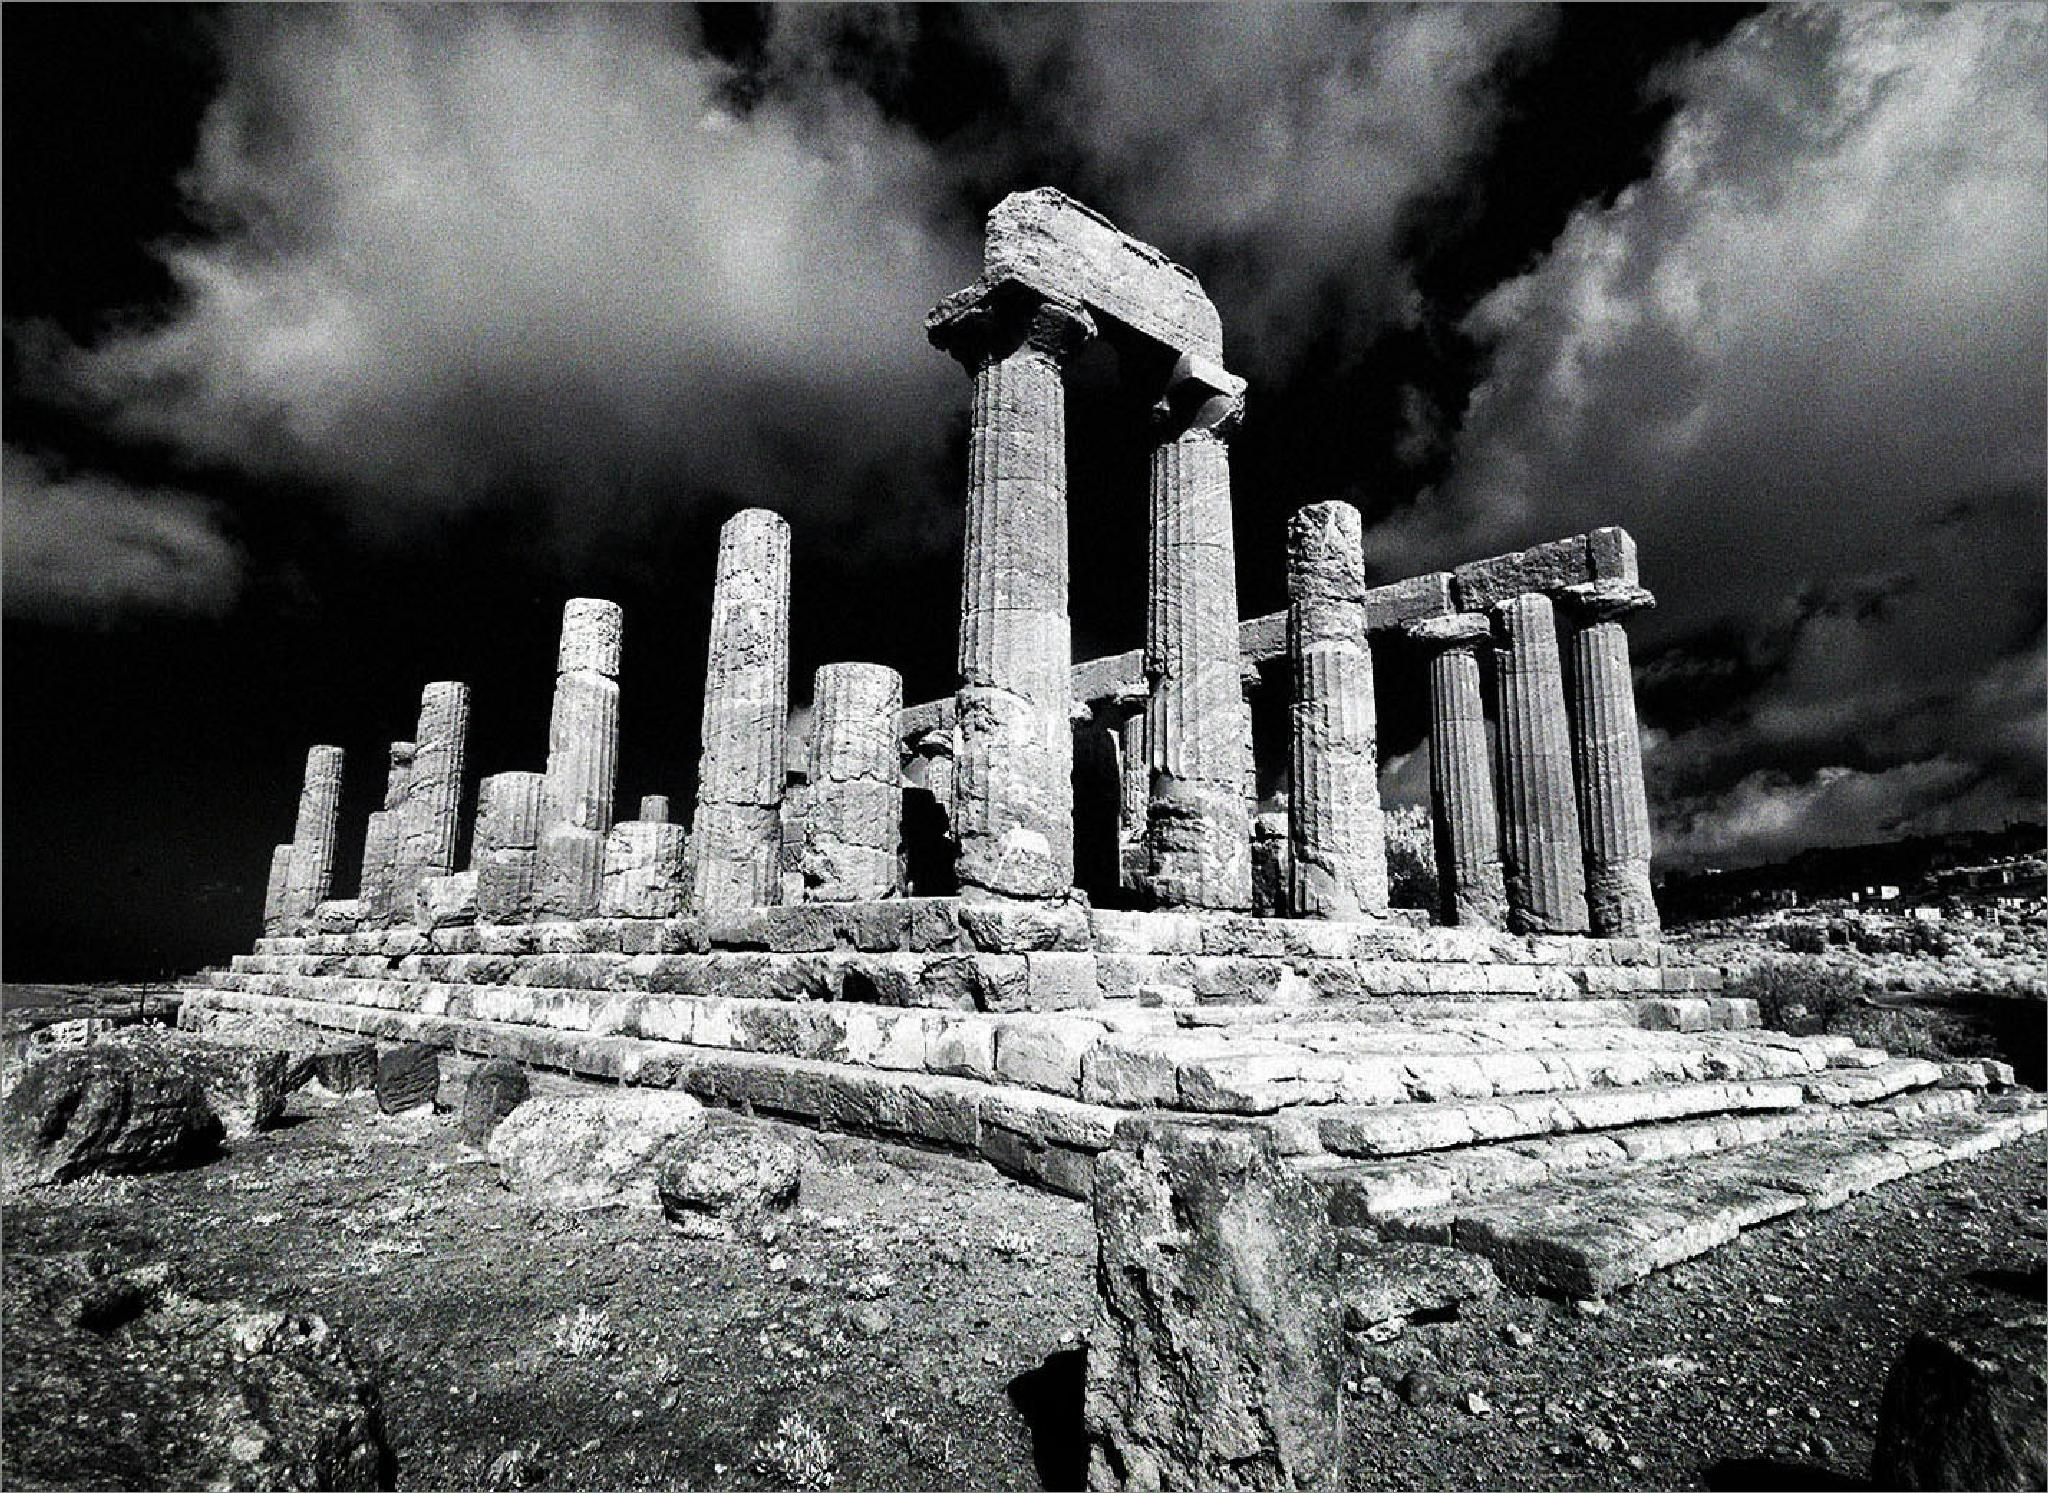 Agrigento, Sicily, infrared image by CliveRowley